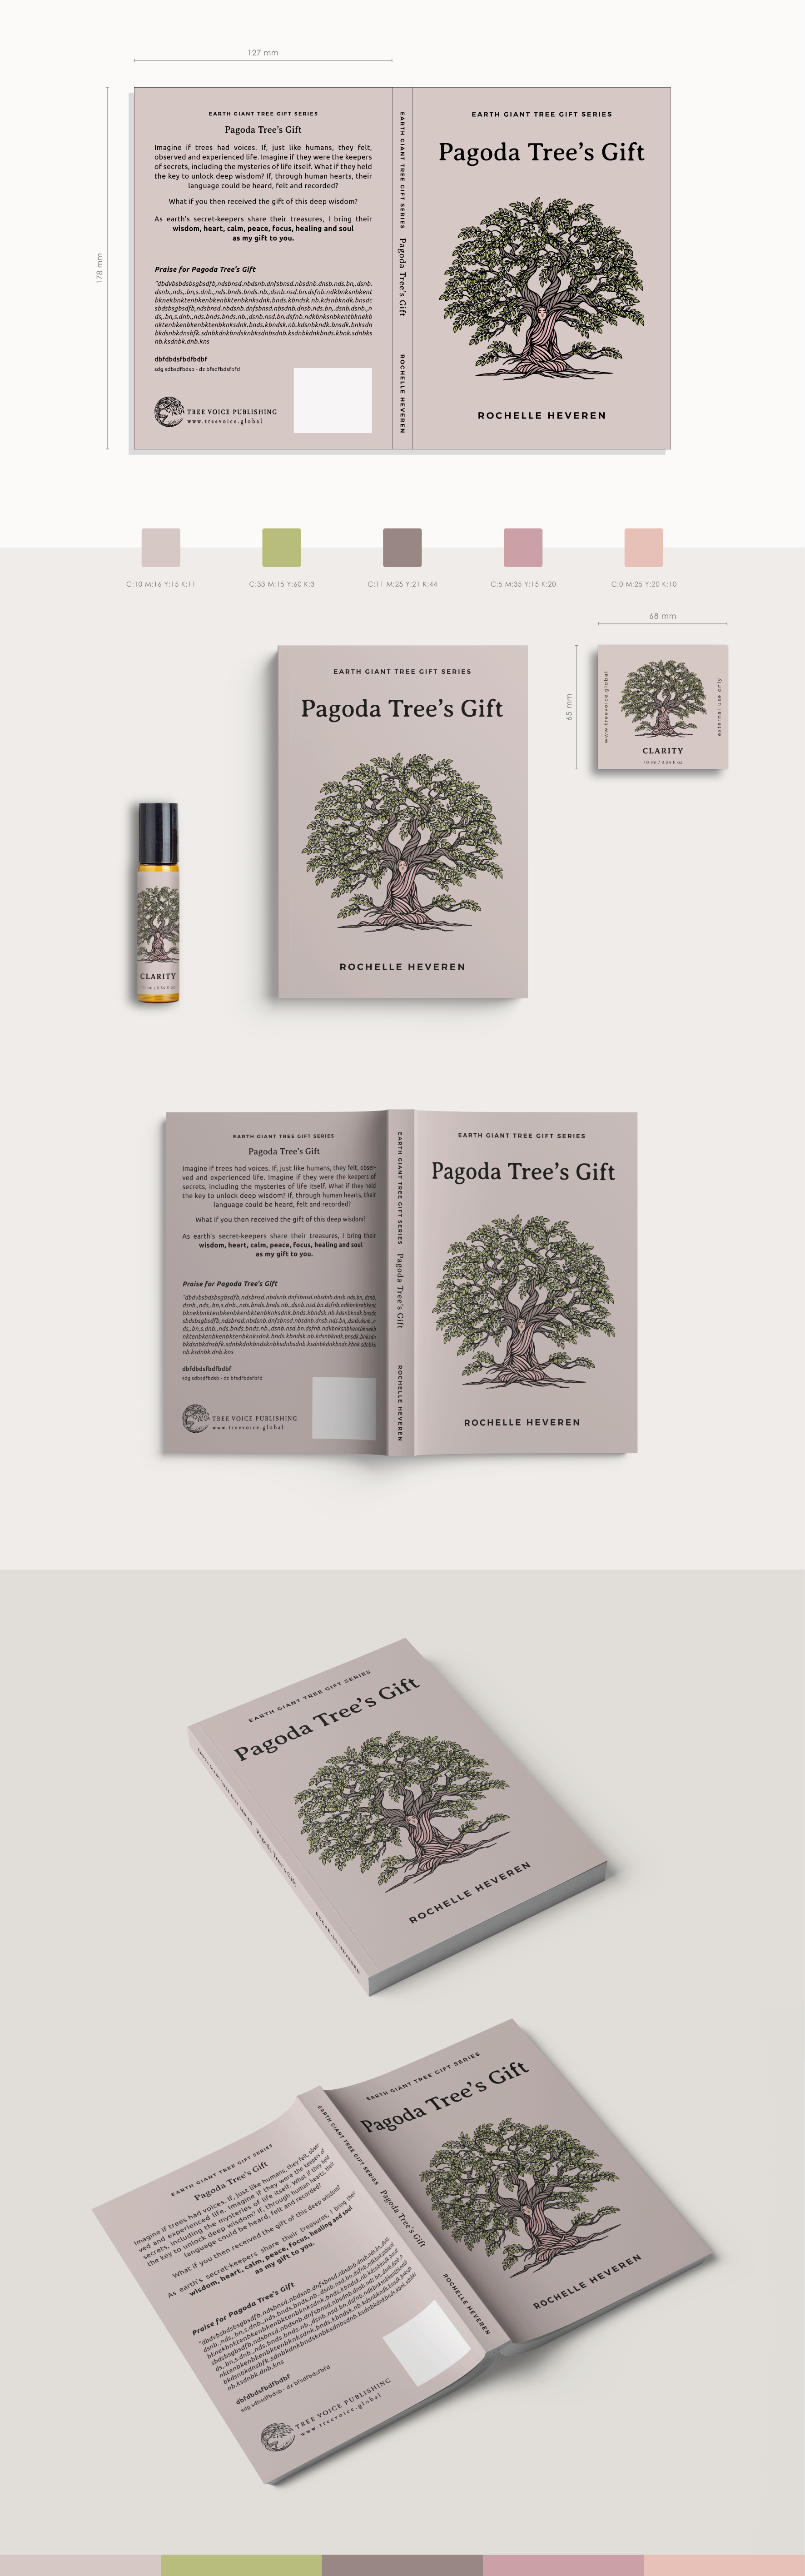 Pagoda Tree's Gift - Book Cover and Essential Oil Bottle Sticker